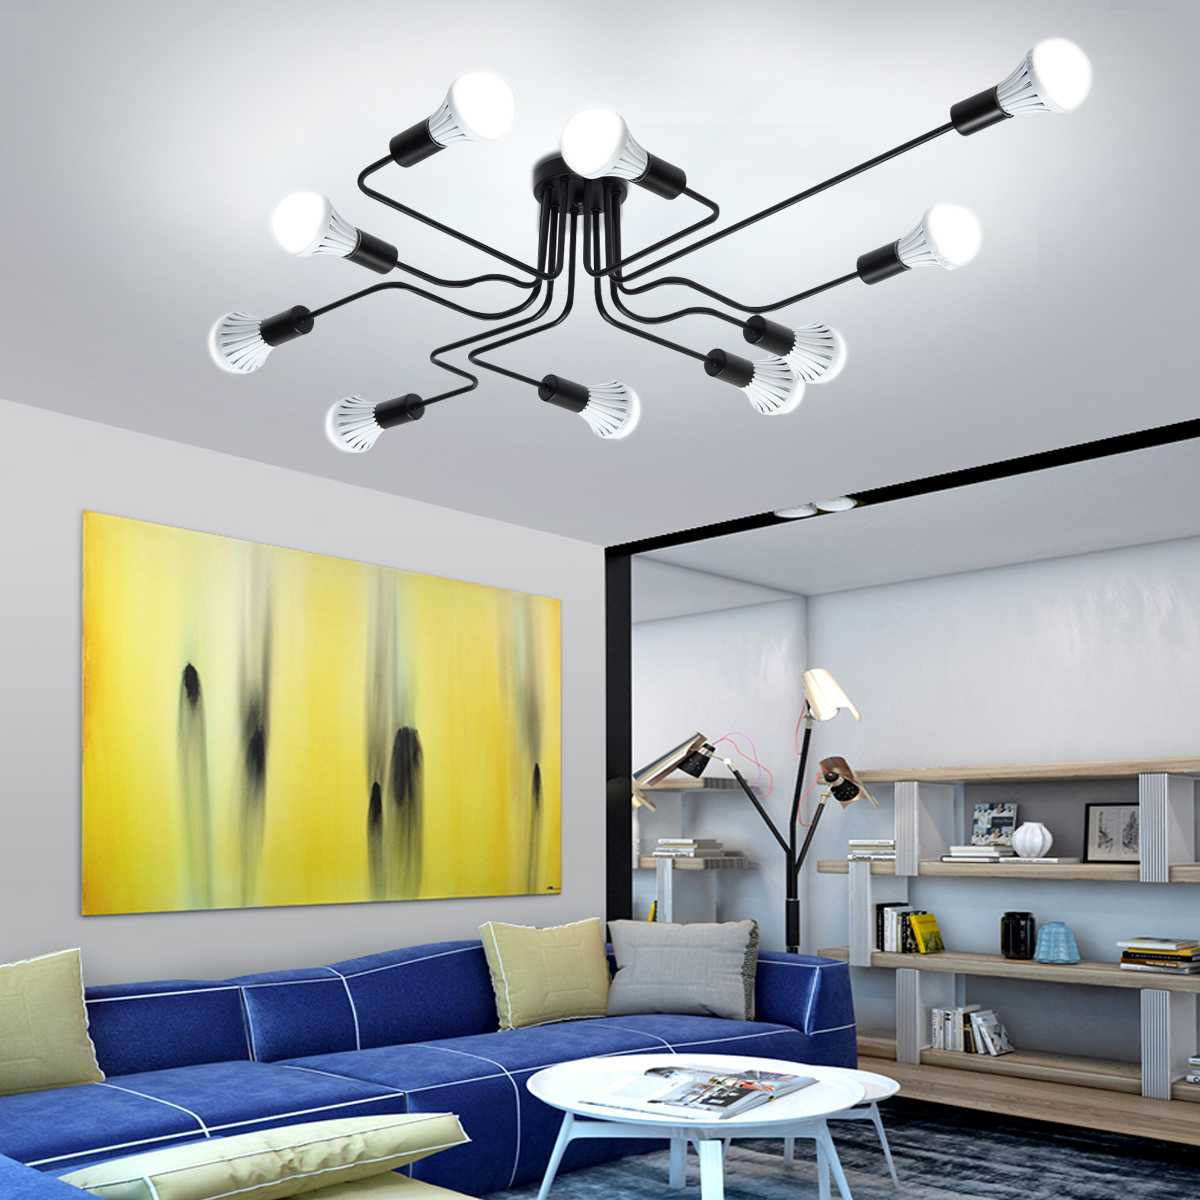 Modern E27 LED Ceiling Chandelier Lighting 10 Heads Living Room Bedroom Chandeliers Home Lighting Fixtures vintage lamp